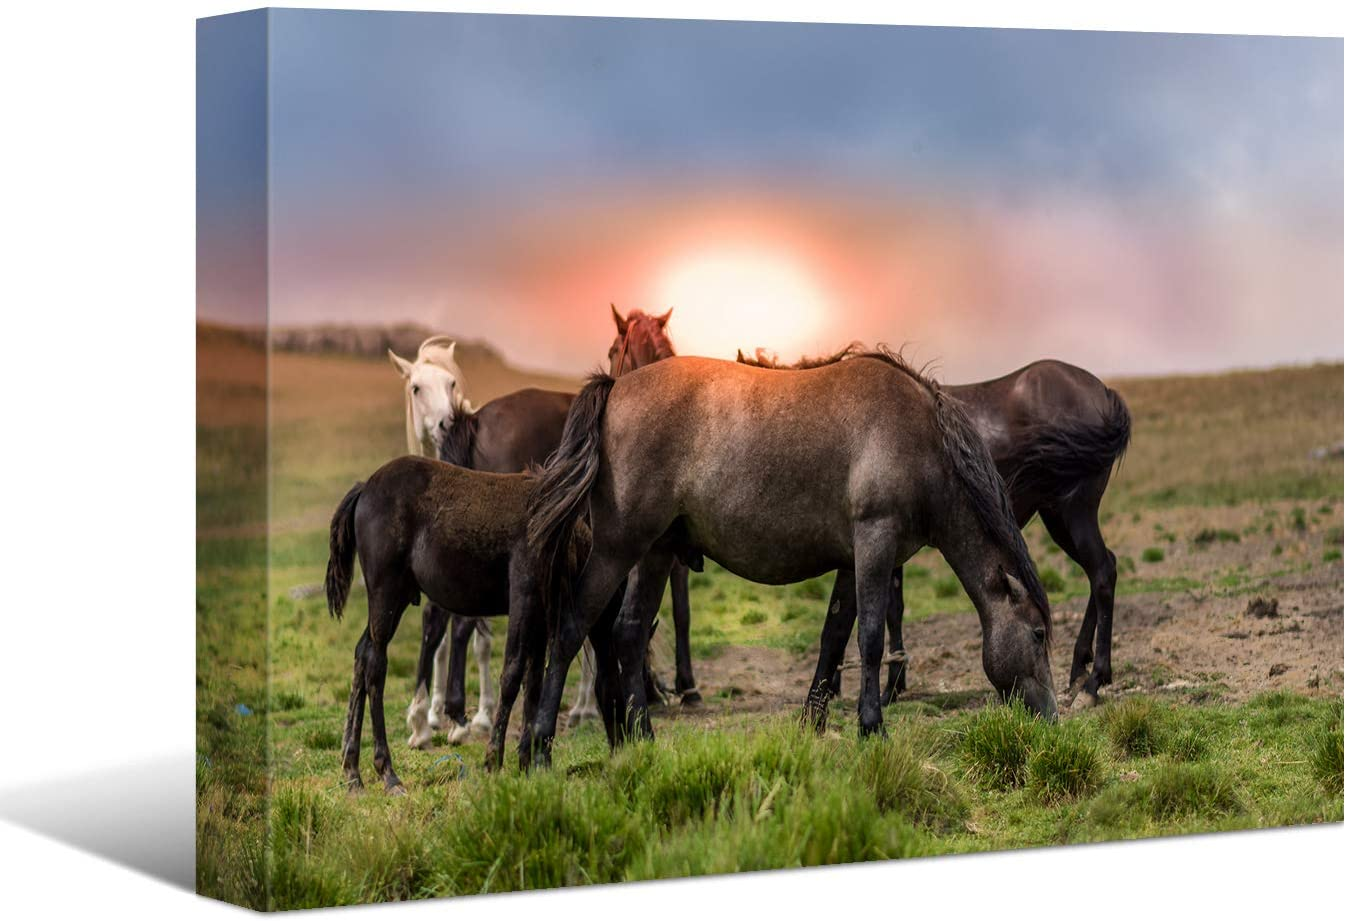 Laoife,A Herd of Horses Picture Prints on Canvas, Modern Wall Art Adornment Picture Decor for Living Room, Bedroom and Office,16x12 Inches